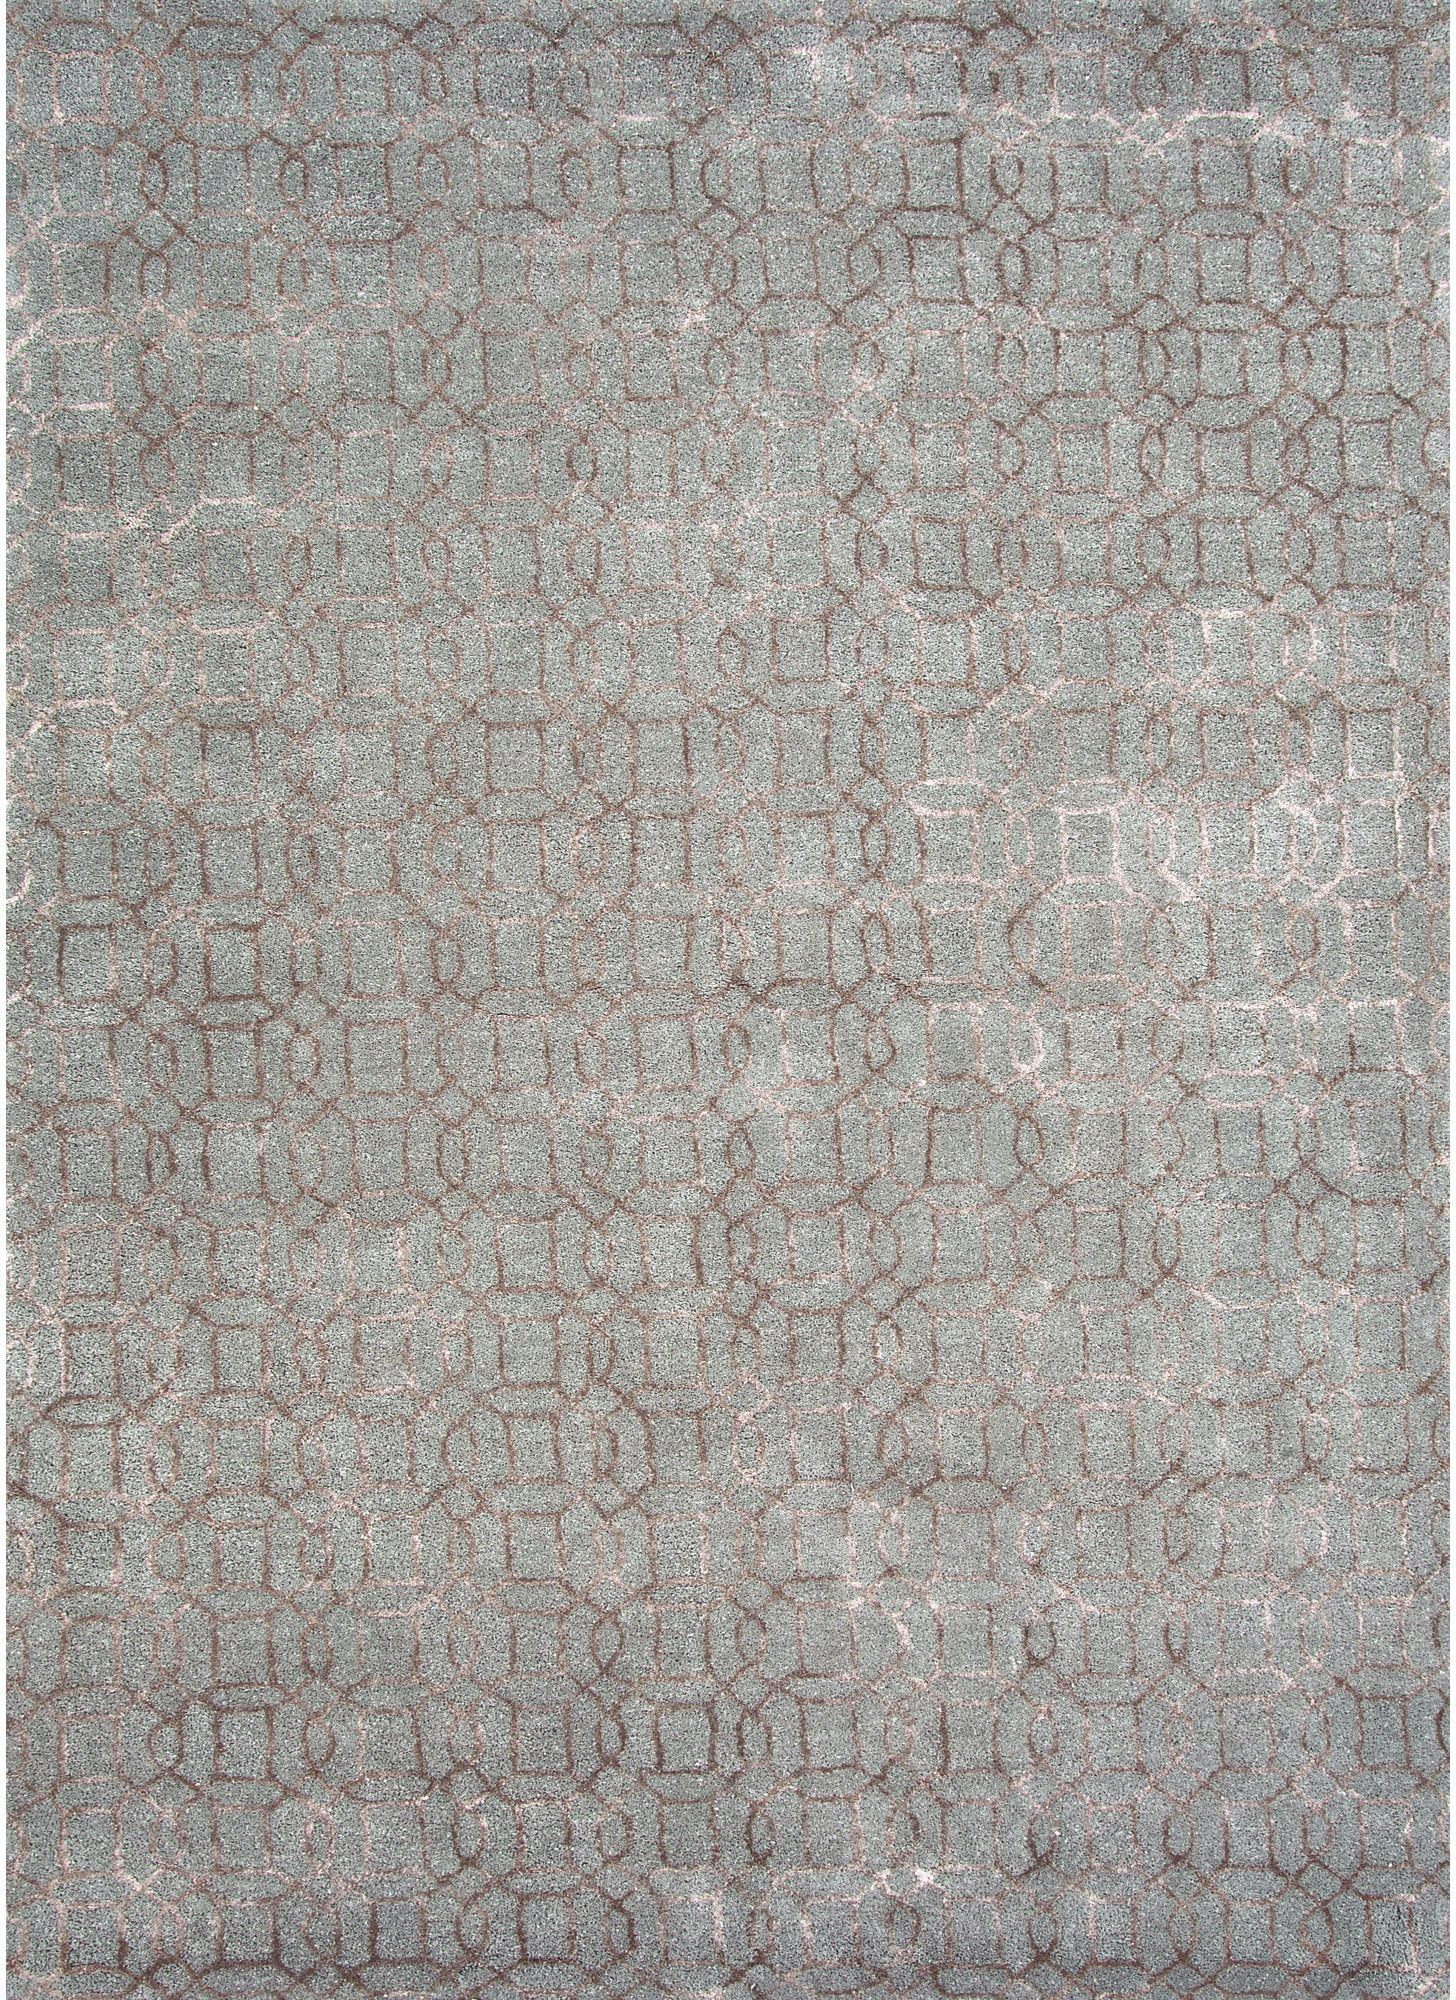 Jaipur Rugs Floor Coverings Hand Tufted Geometric Pattern Wool Art